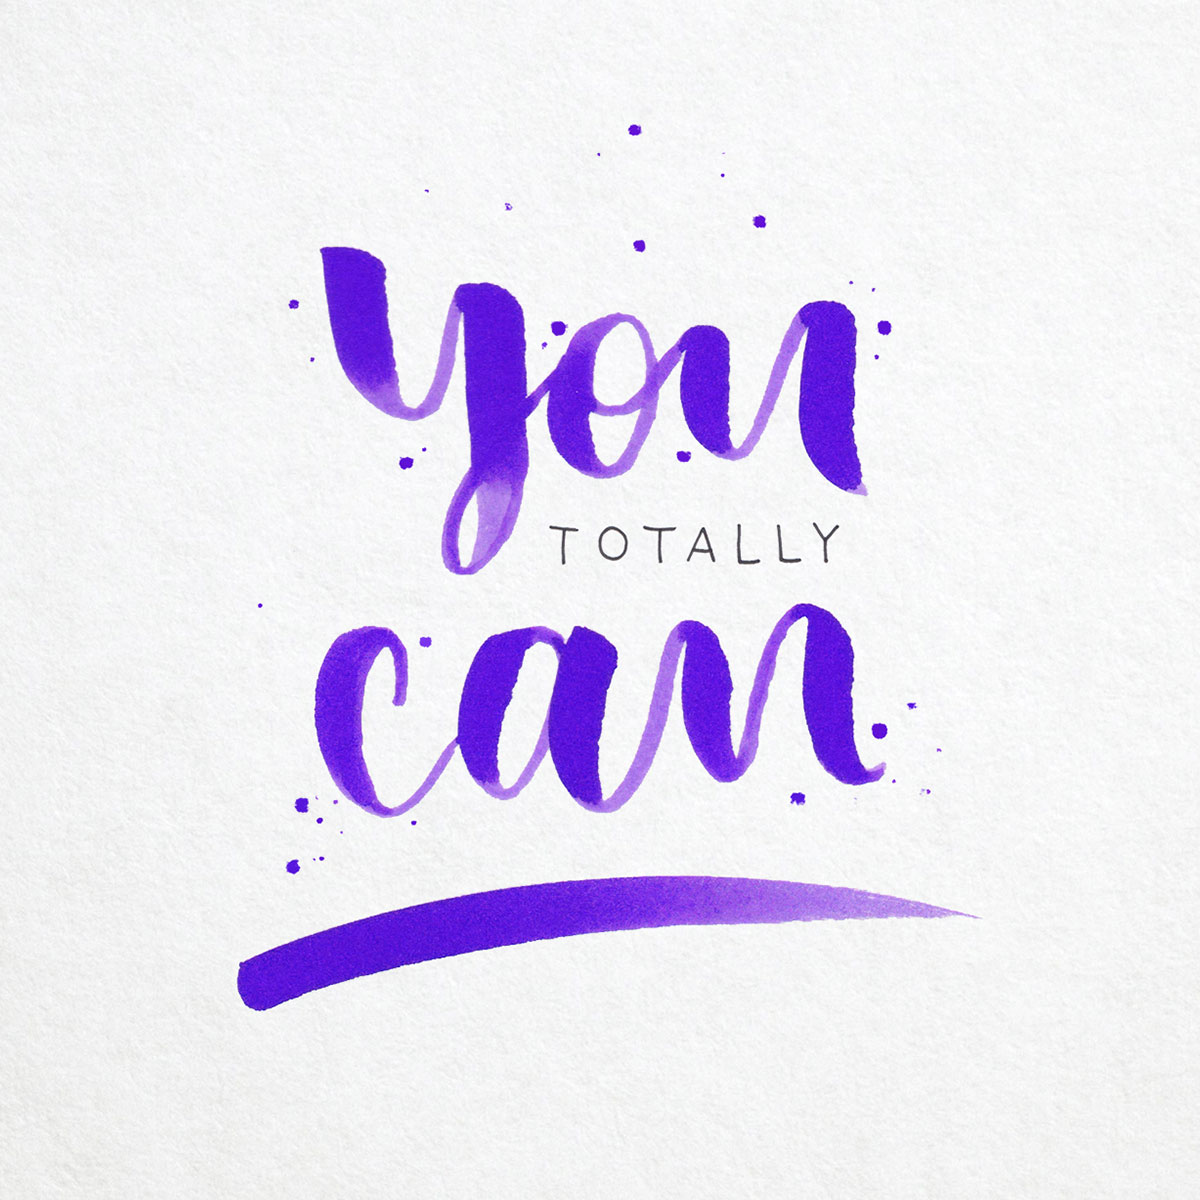 Lettering - You totally can!